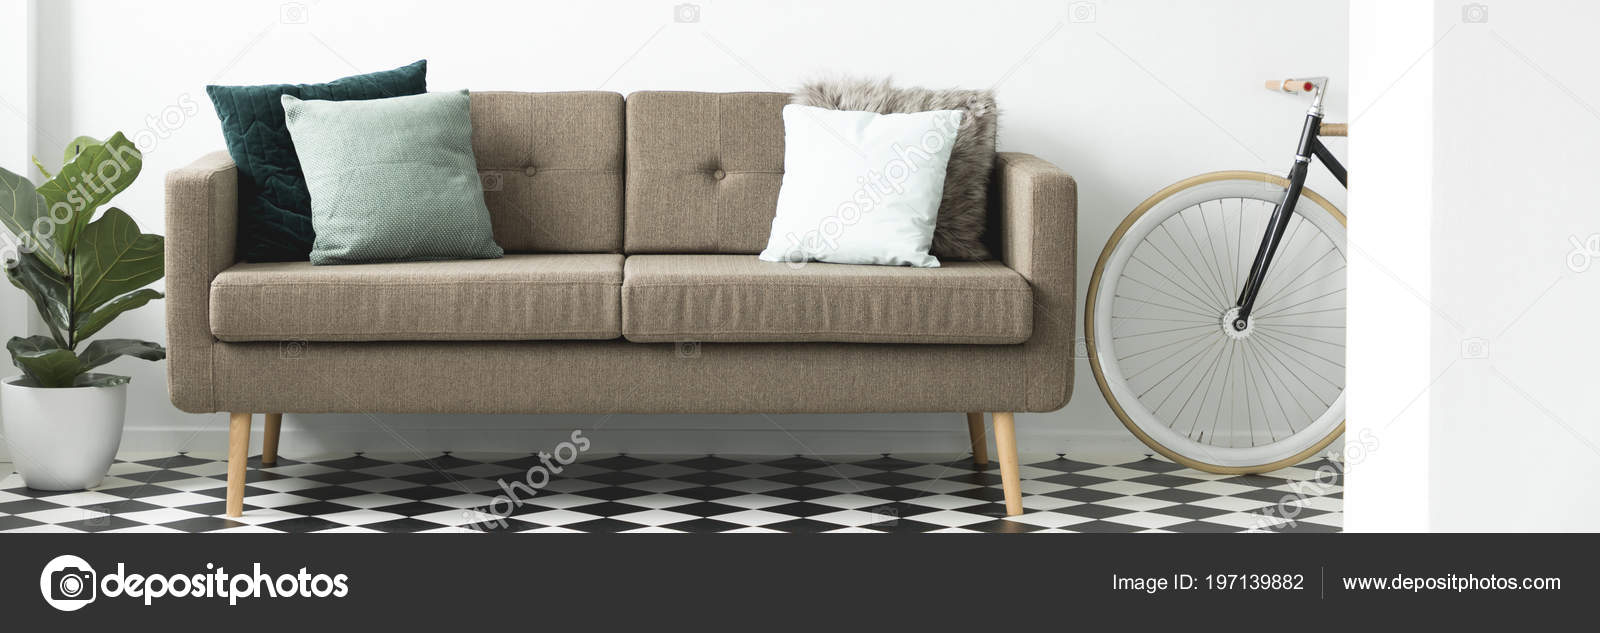 Brown Sofa Decorative Pillows Placed White Living Room